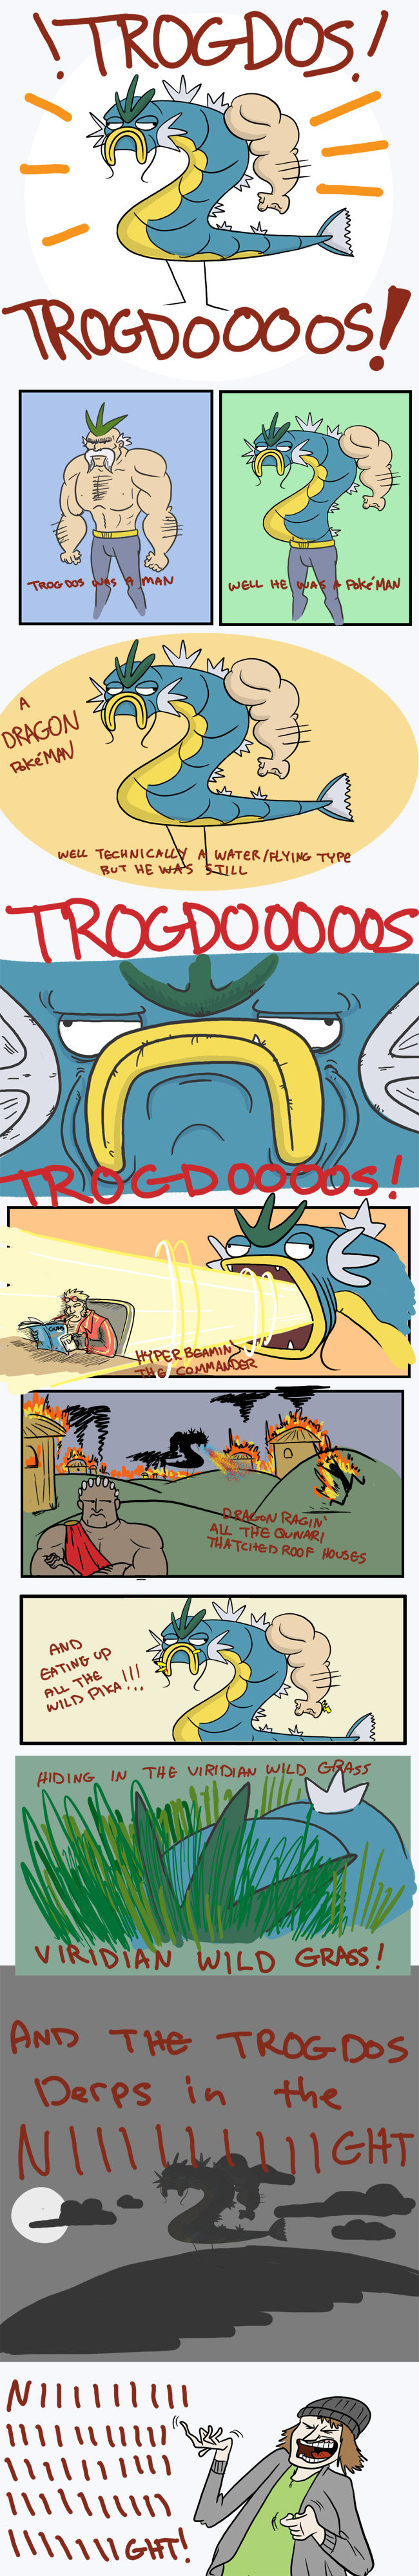 trogdos. lol its from a wicked site. mu n nu Hilts; ever', A 7 rid:. if you're wondering what website this comic is from, go to